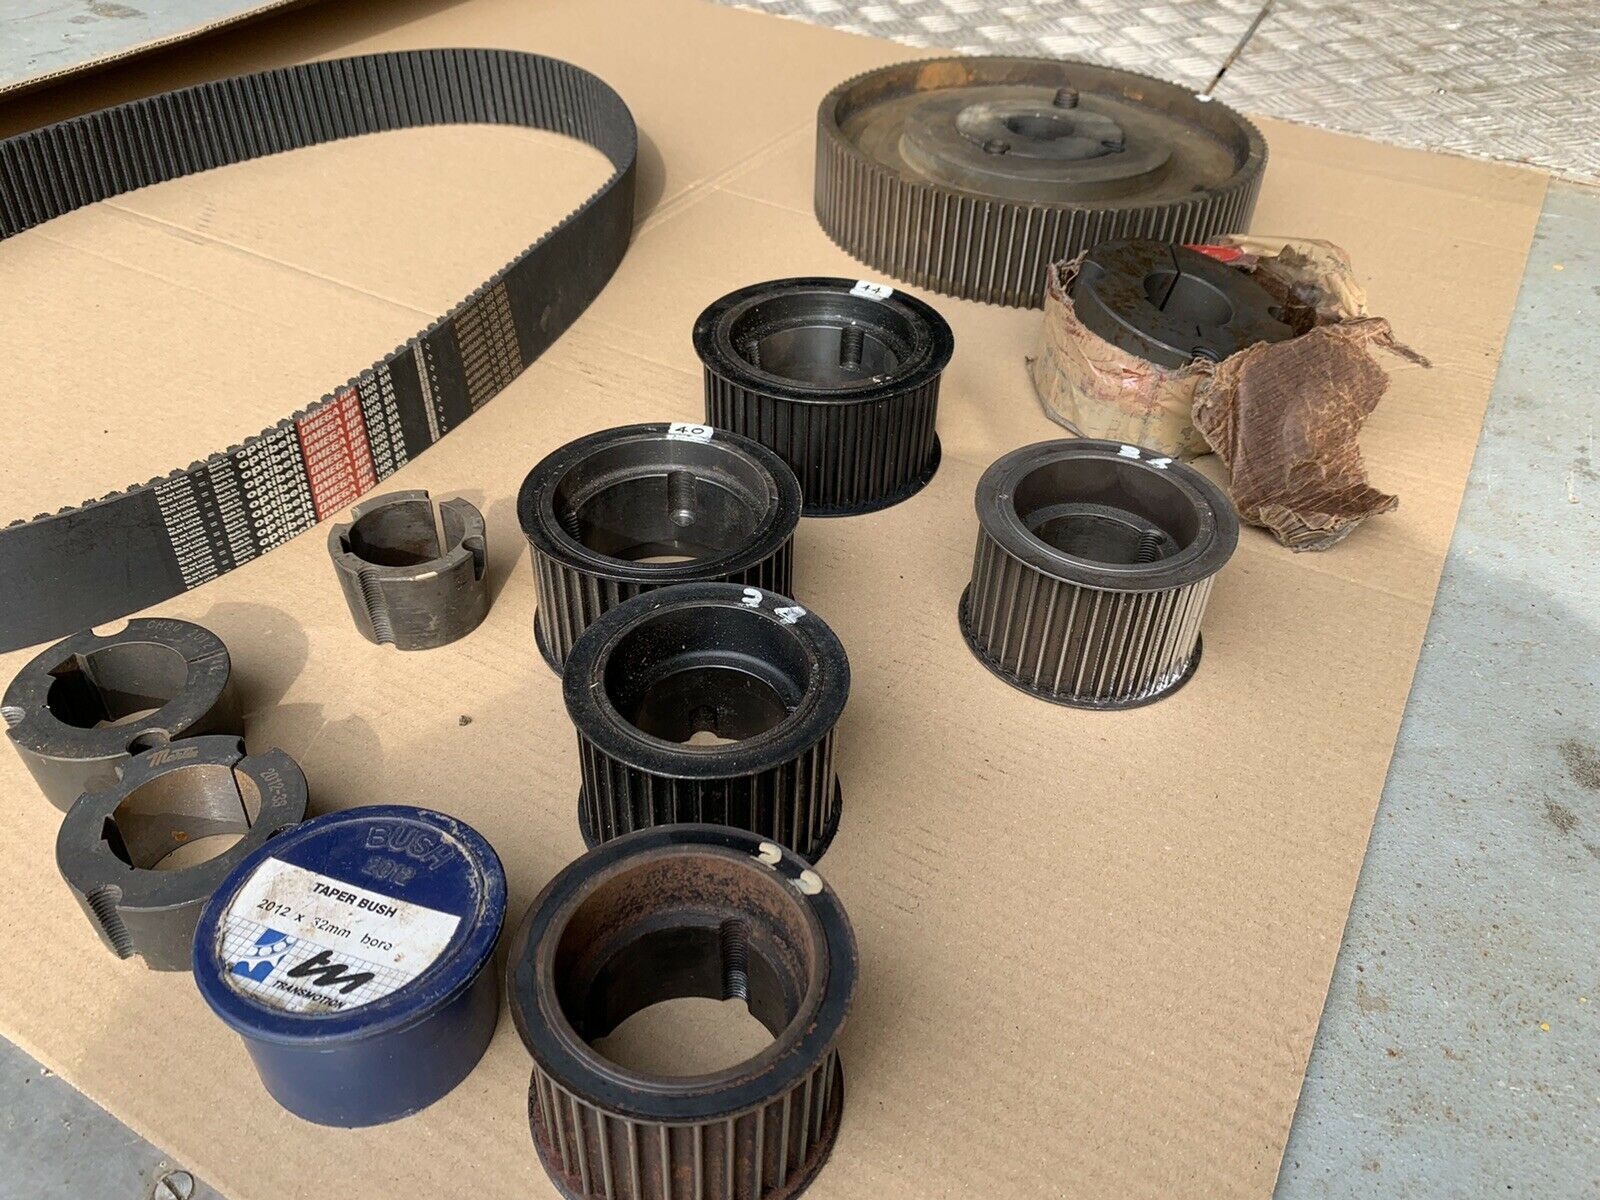 Set of HTD timing pulleys and belt for high power transmission